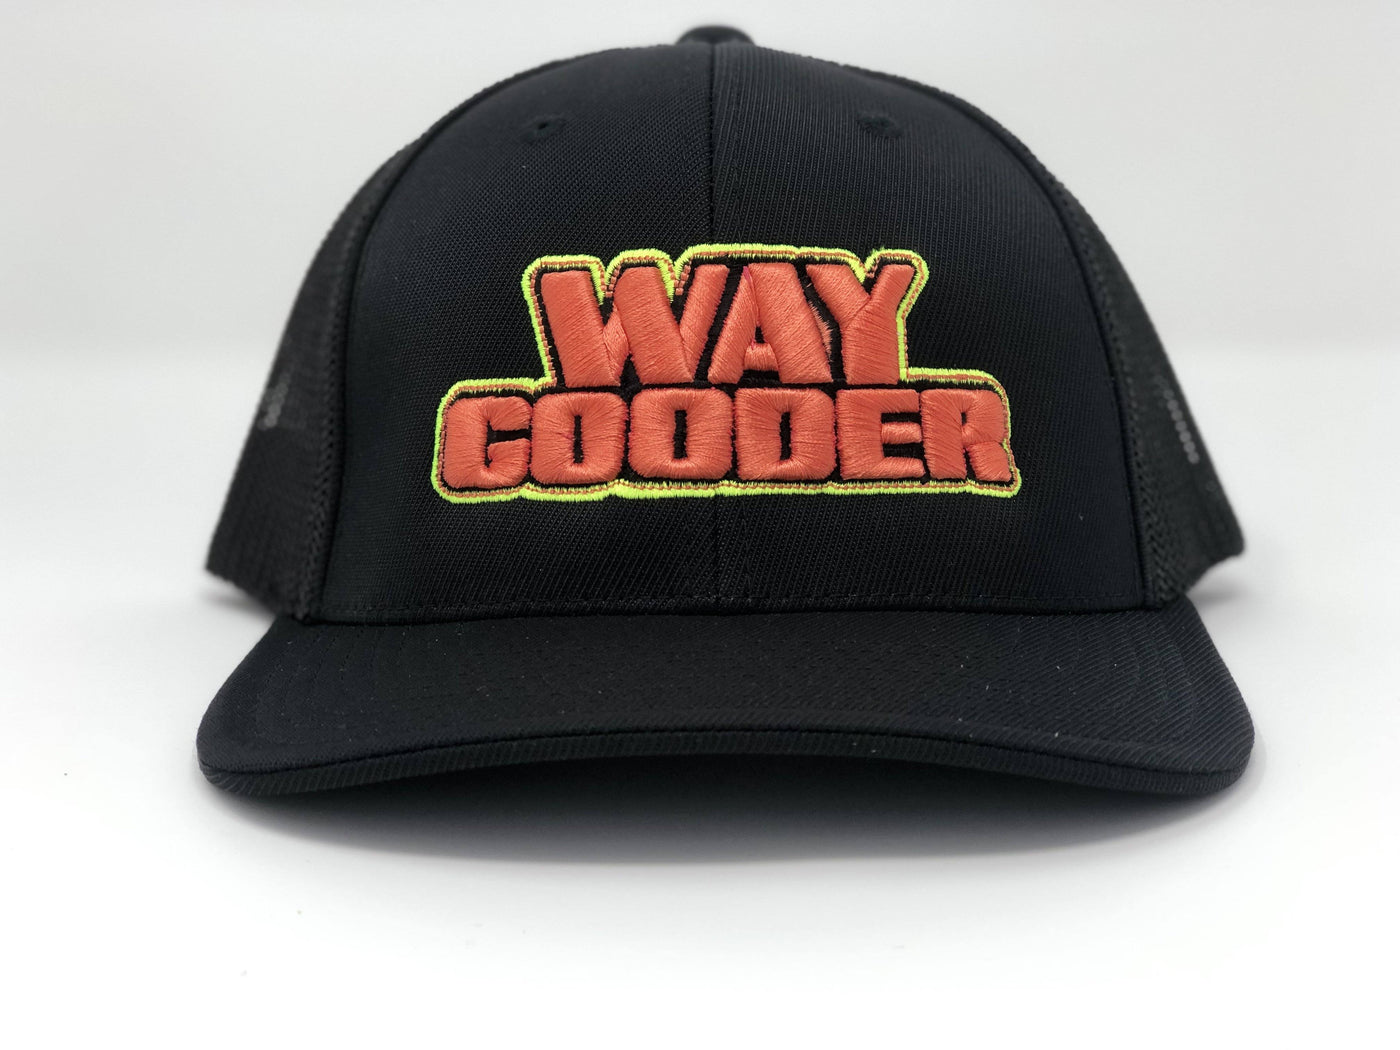 06eac1ed9a5 Way Gooder Exclusive Pacific 404M Flexfit Hat  HyperFusion at  headbangersports.com ...